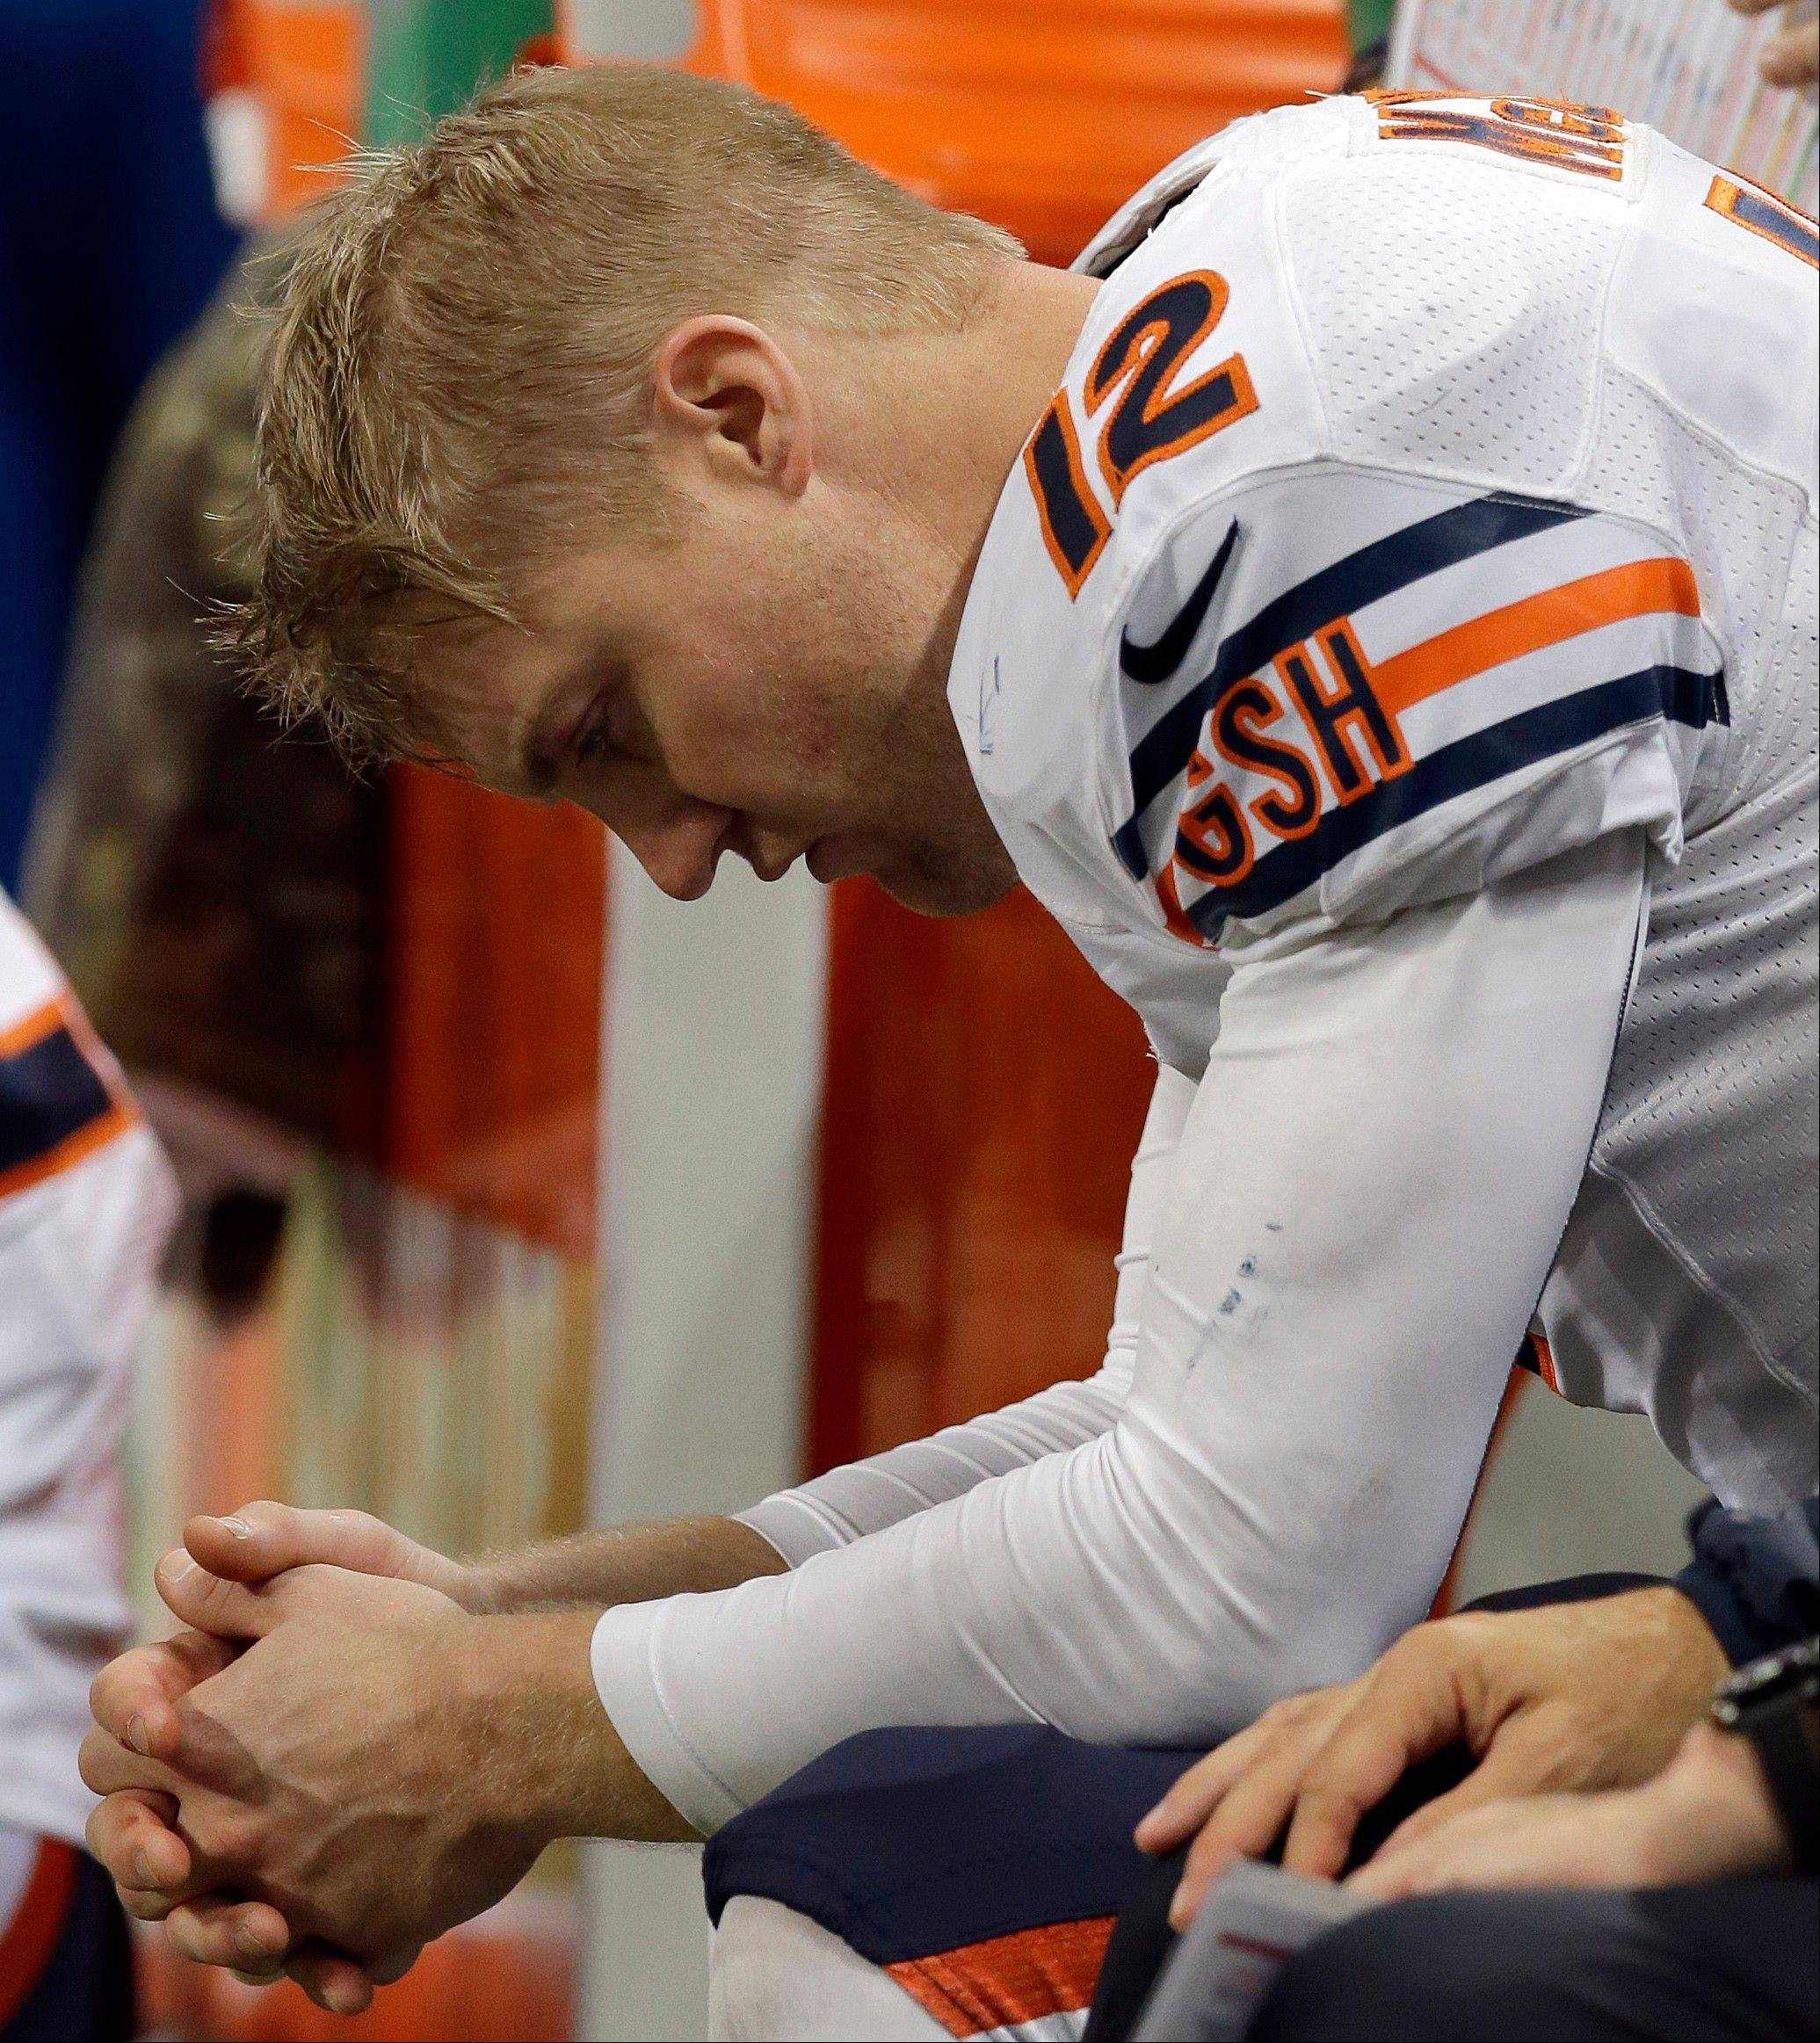 Bears quarterback Josh McCown sits on the bench during the last minute of an NFL football game against the St. Louis Rams, Sunday, Nov. 24, 2013, in St. Louis. The Rams won 42-21.